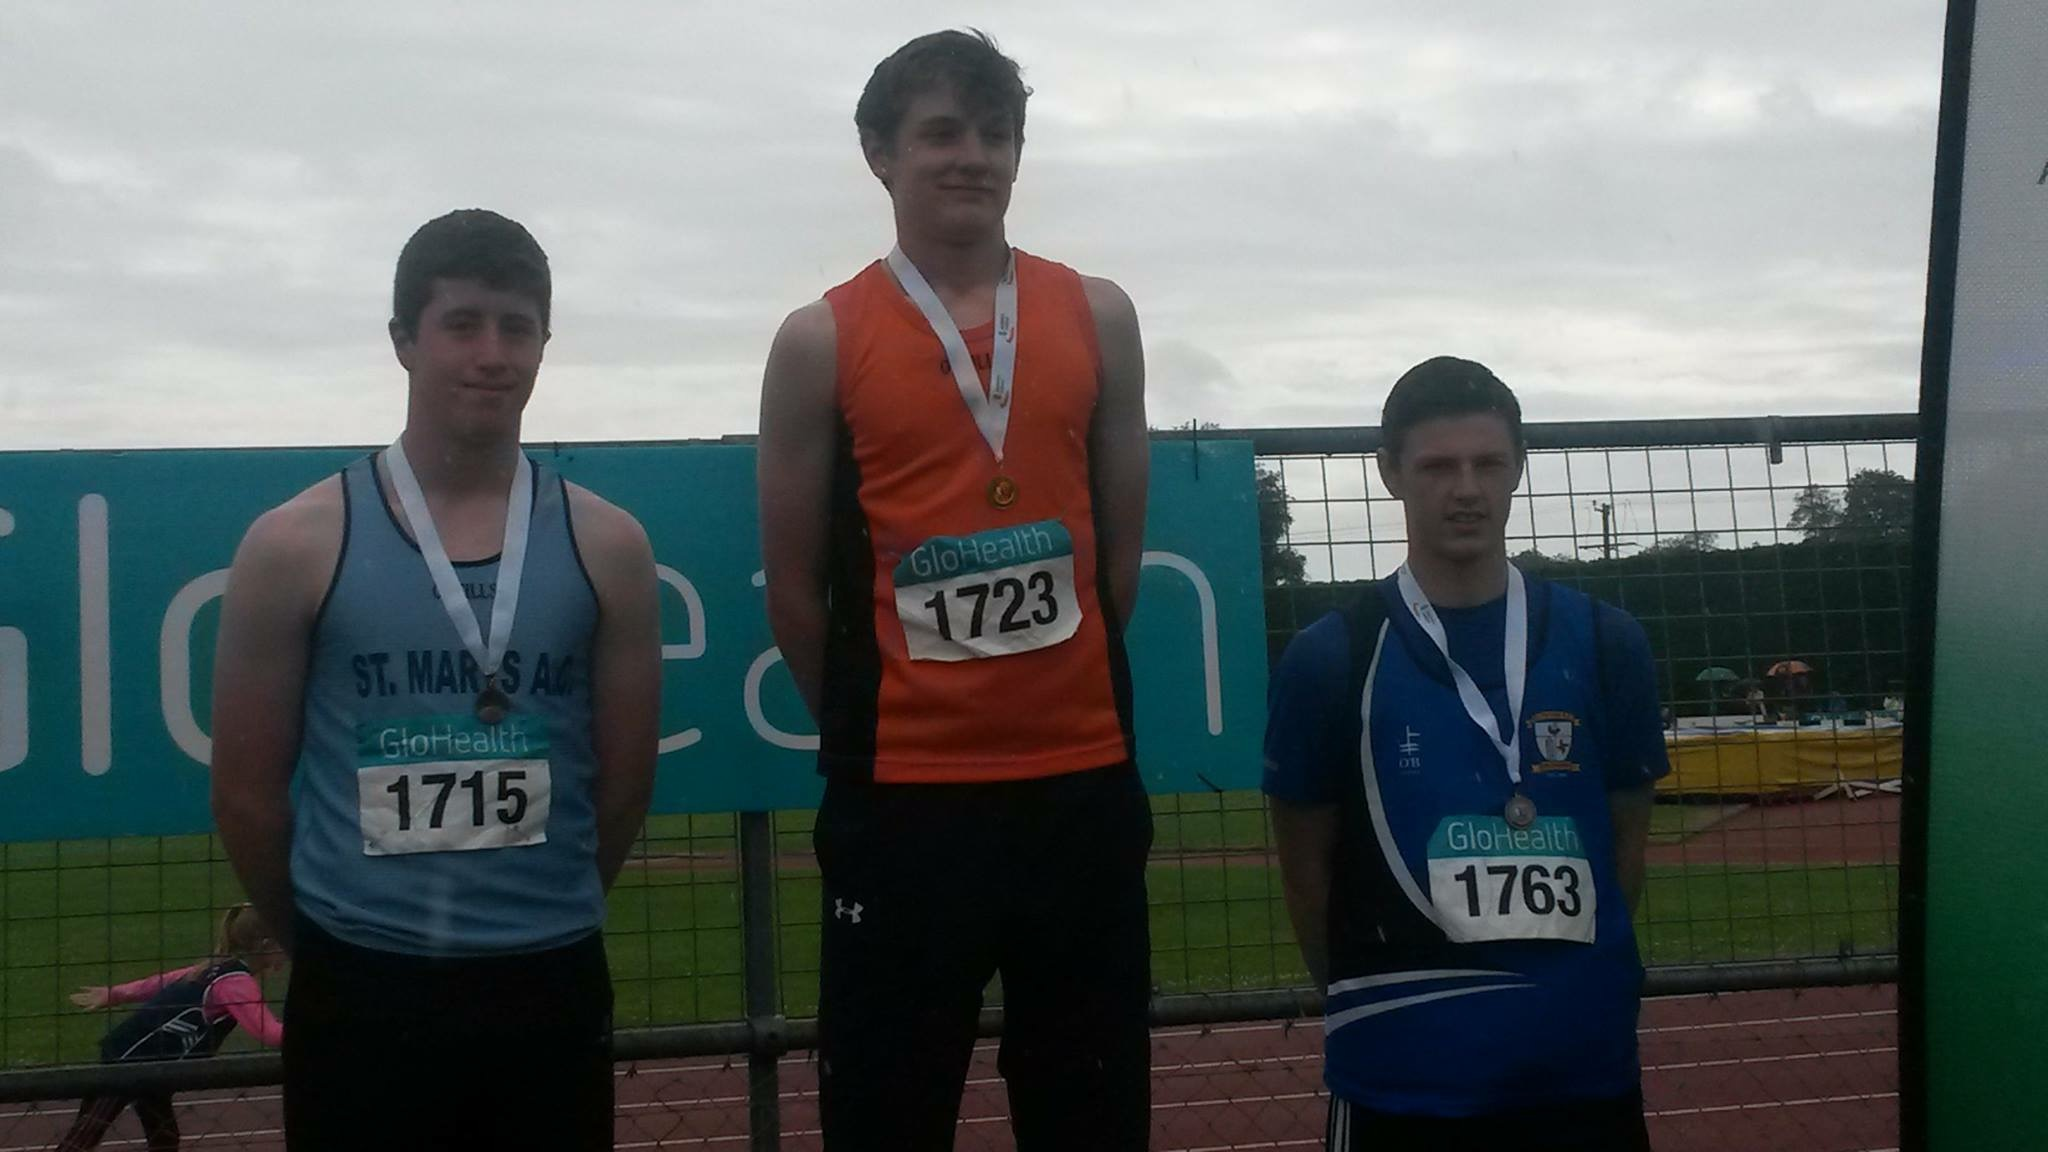 Gabriel Bell (on the right) at Irish Juvenile Combined Events' Championships (Tullamore, June 2015)